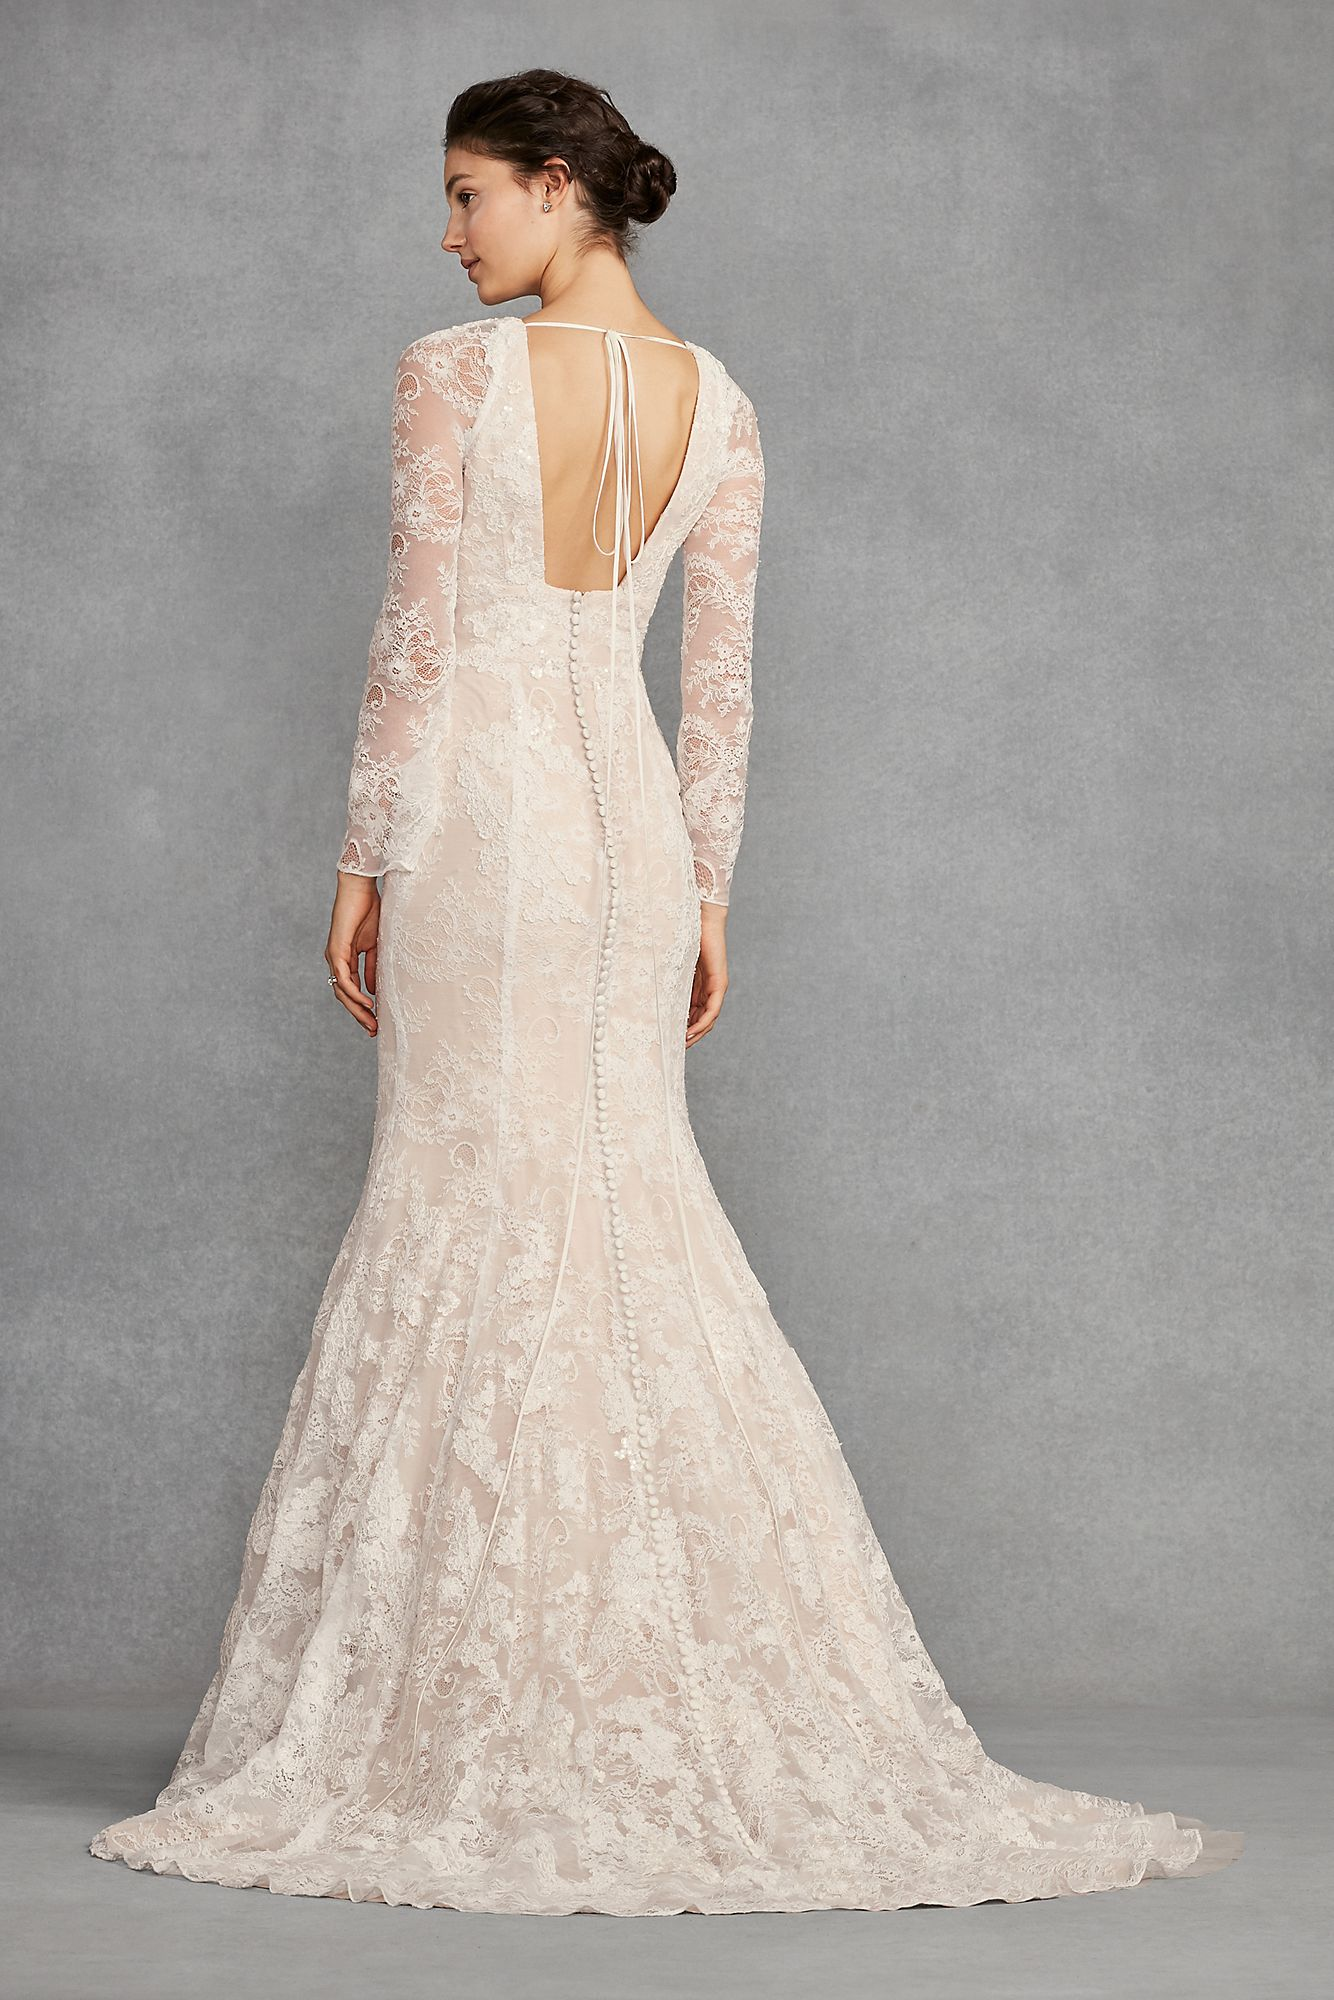 vera wang wedding dresses with sleeves photo - 1